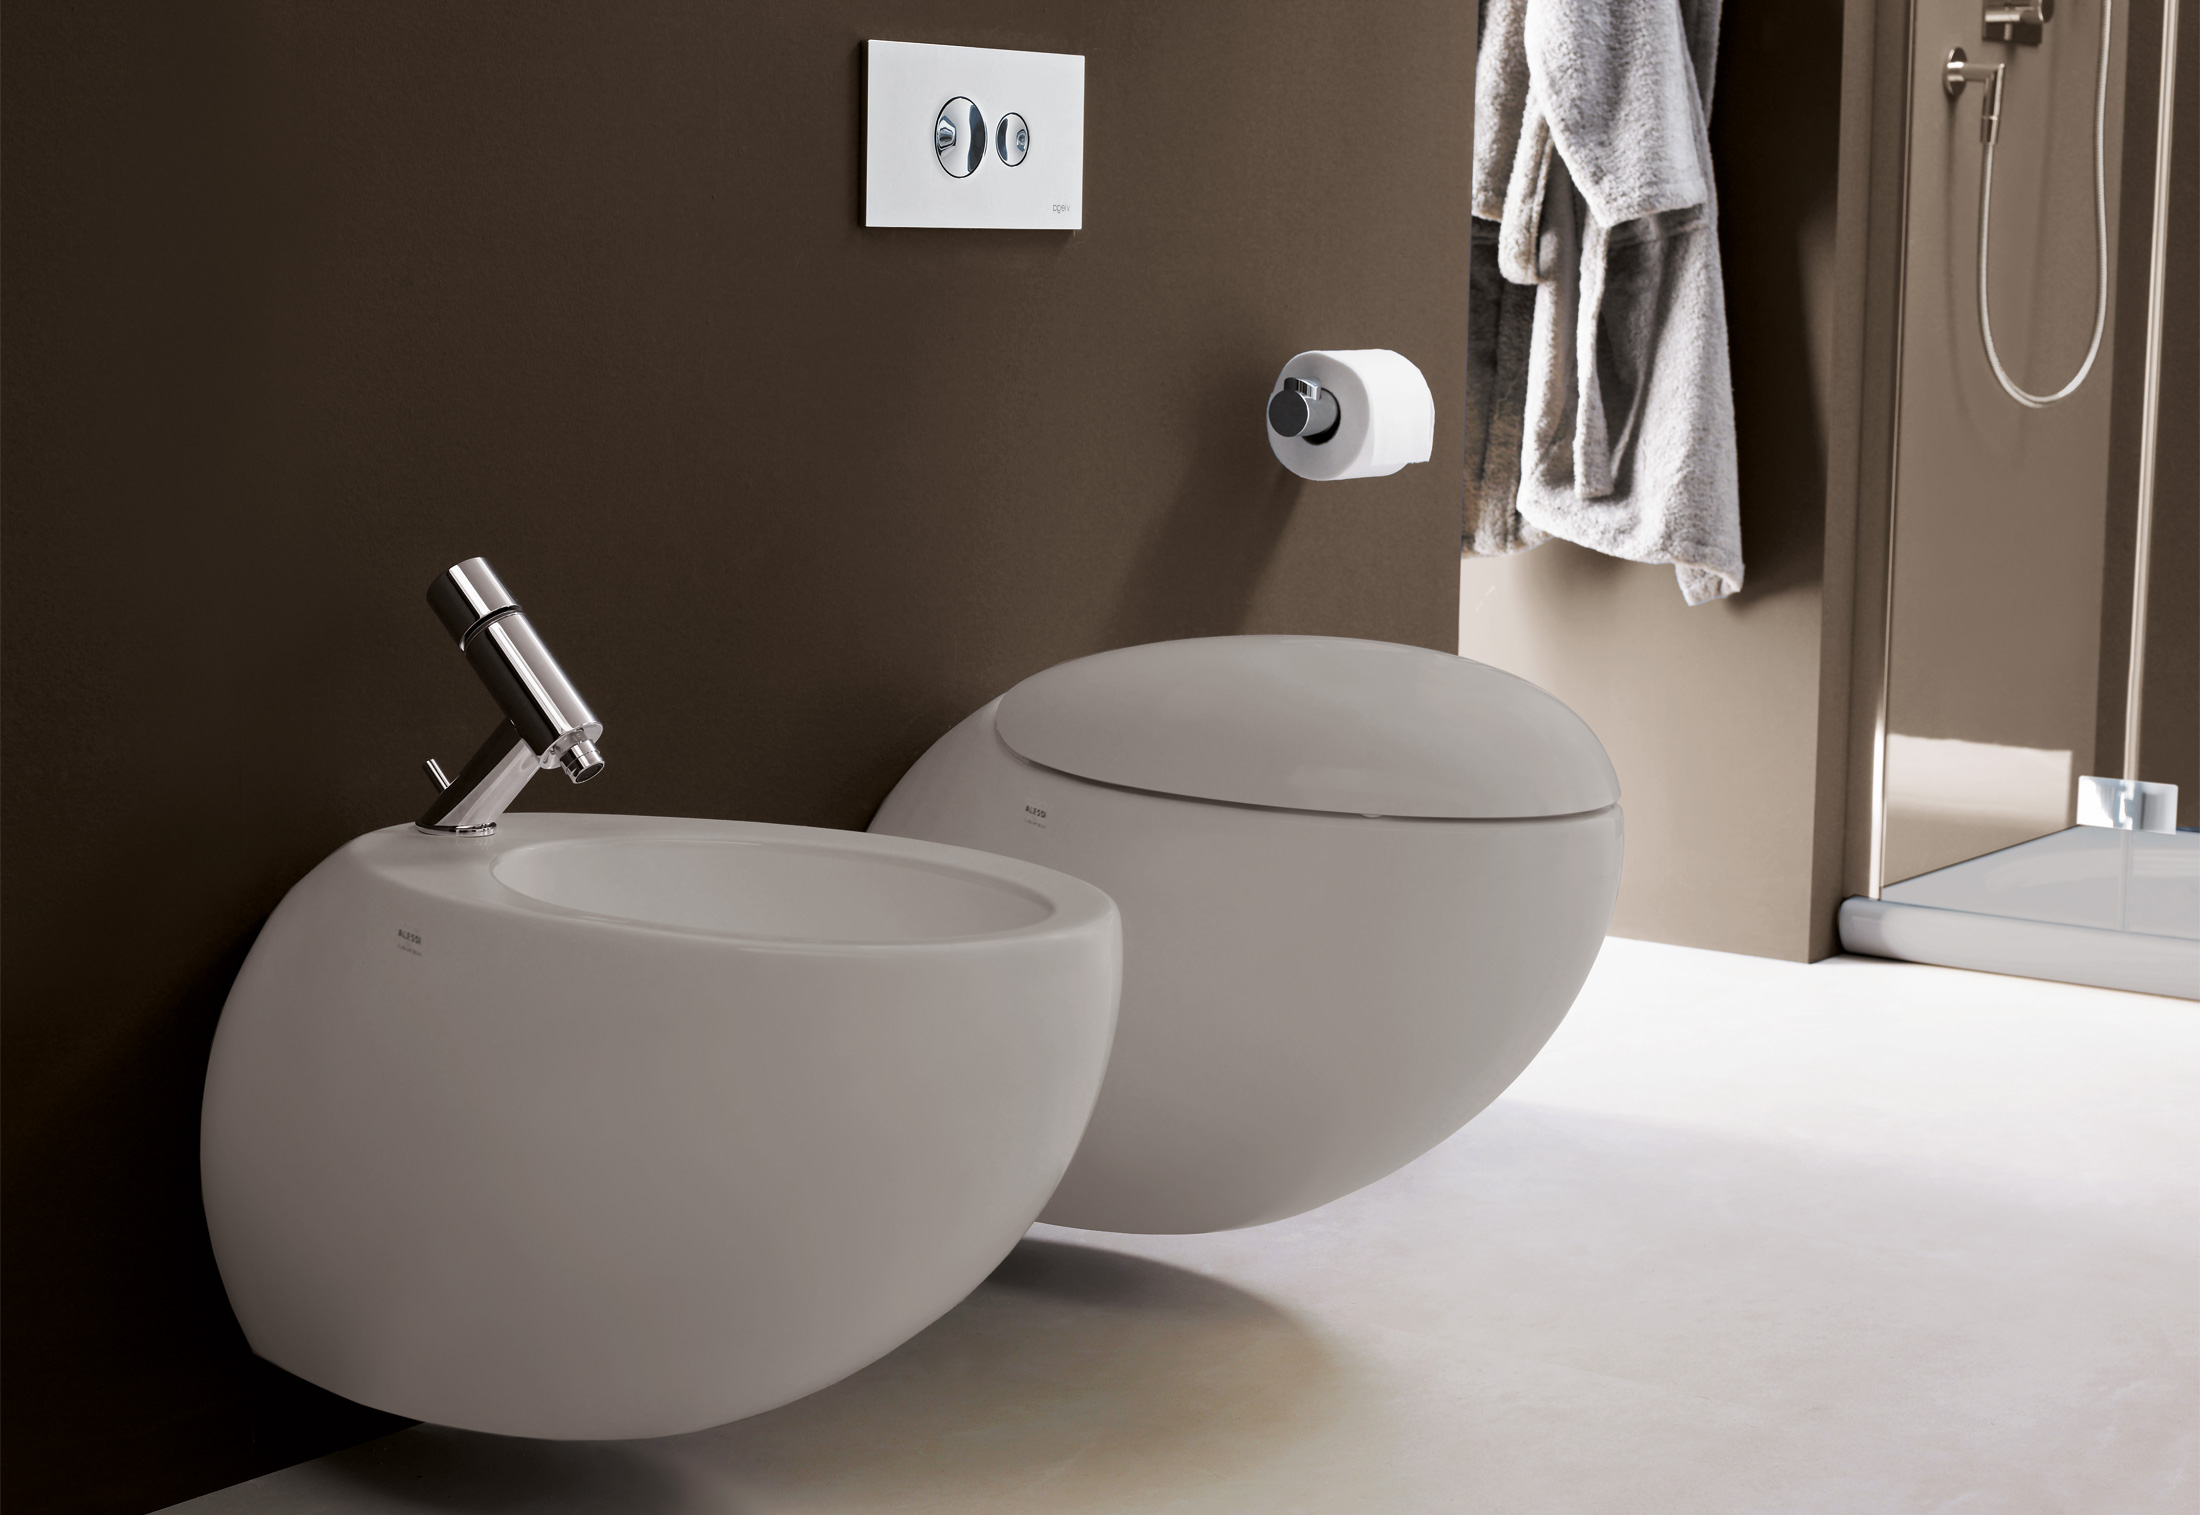 https://cdn.stylepark.com/manufacturers/l/laufen/produkte/il-bagno-alessi-one-wall-mounted-bidet/il-bagno-alessi-one-wall-mounted-bidet-1.jpg